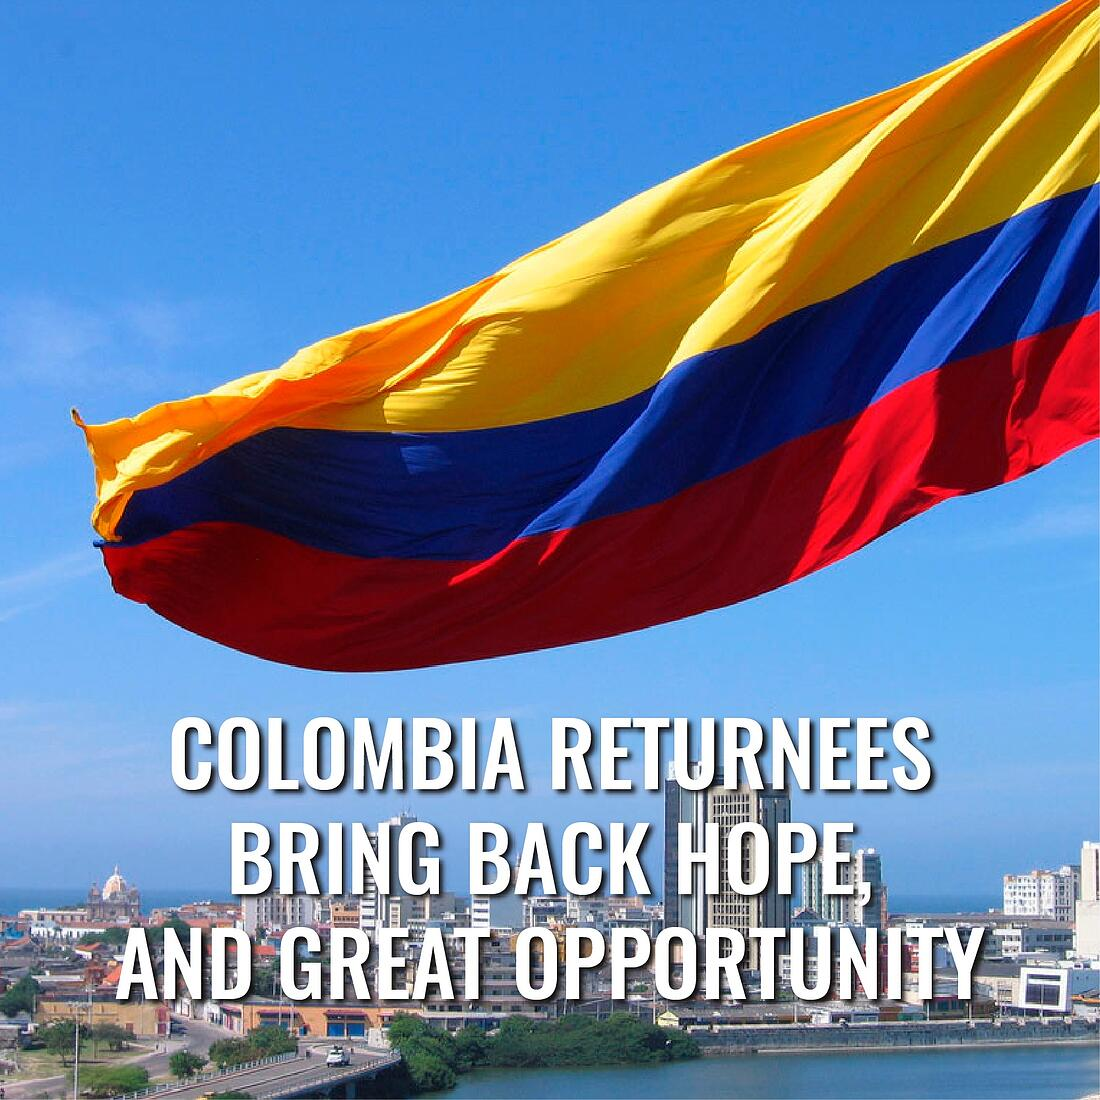 Colombia-returnees-01.jpg